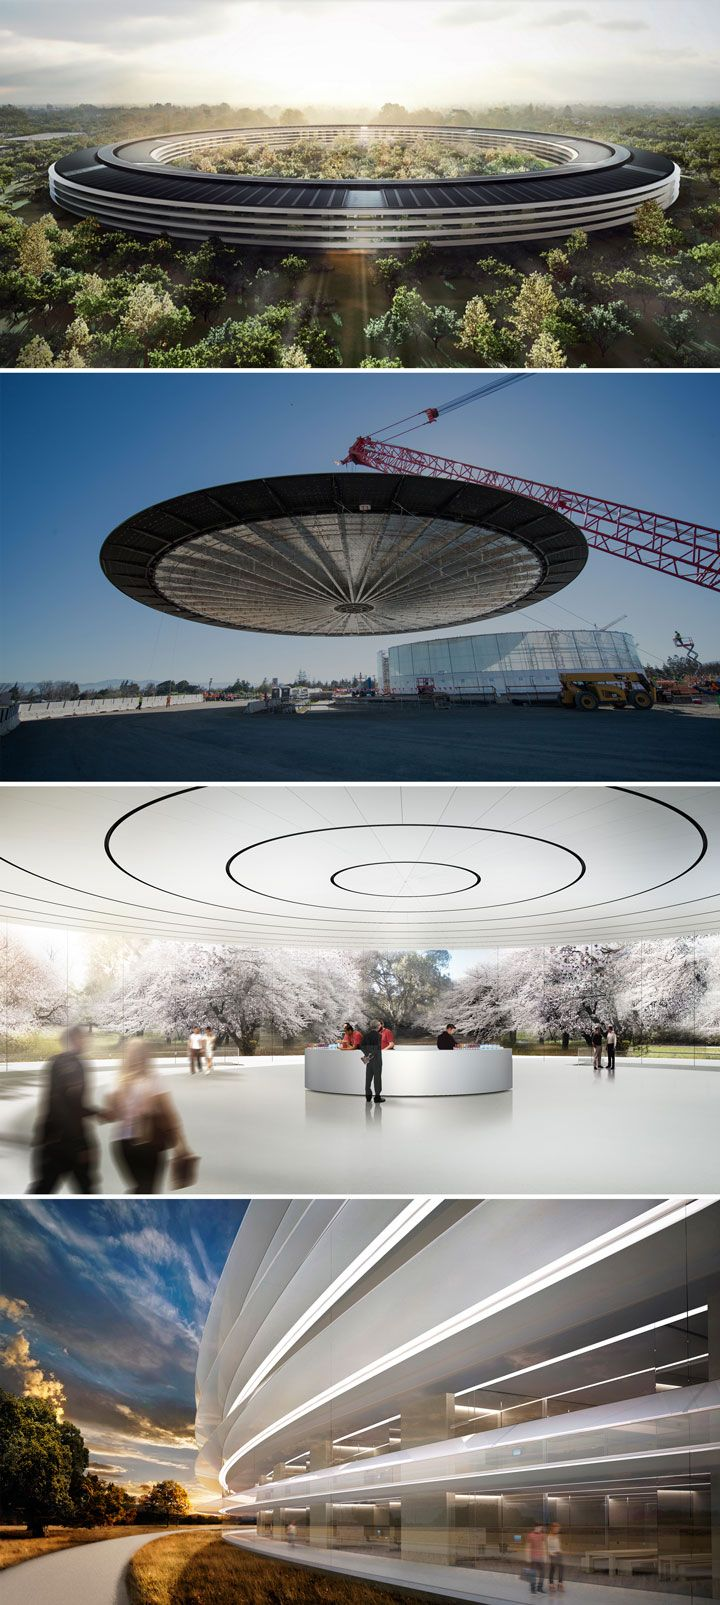 The spaceship rises: A first look at Apple's new campus